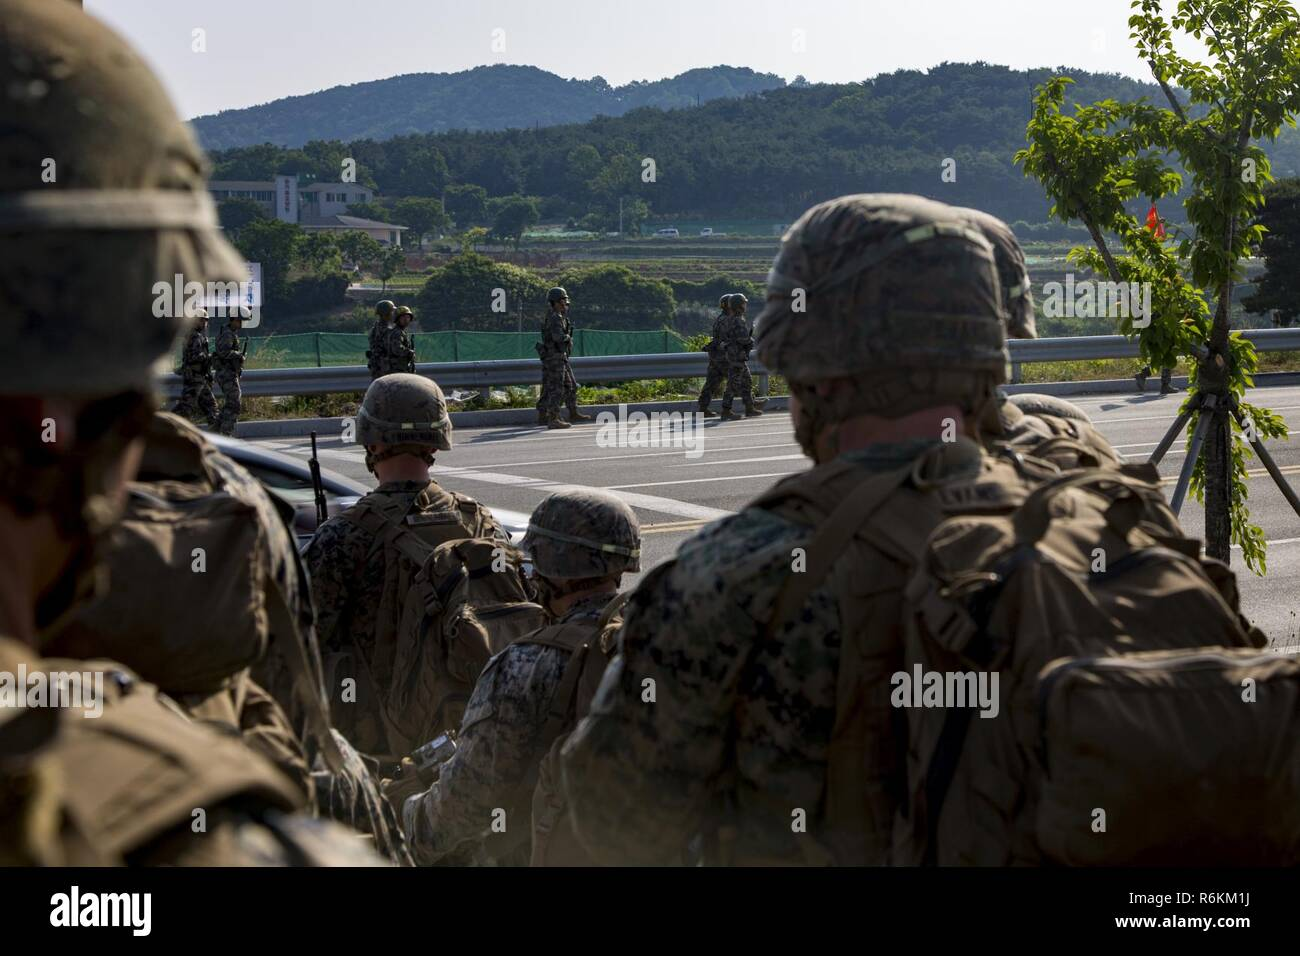 U.S. Marines and Sailors with India Company, 3rd battalion, 8th Marines, forward deployed to the 3rd Marine Division, as part of the forward Unit Deployment Program, observe Republic of Korea Marines hiking on Camp Mujuk, South Korea. May 29, 2017. This is the first time that most of the marines have ever seen Republic of Korea Marines. Stock Photo